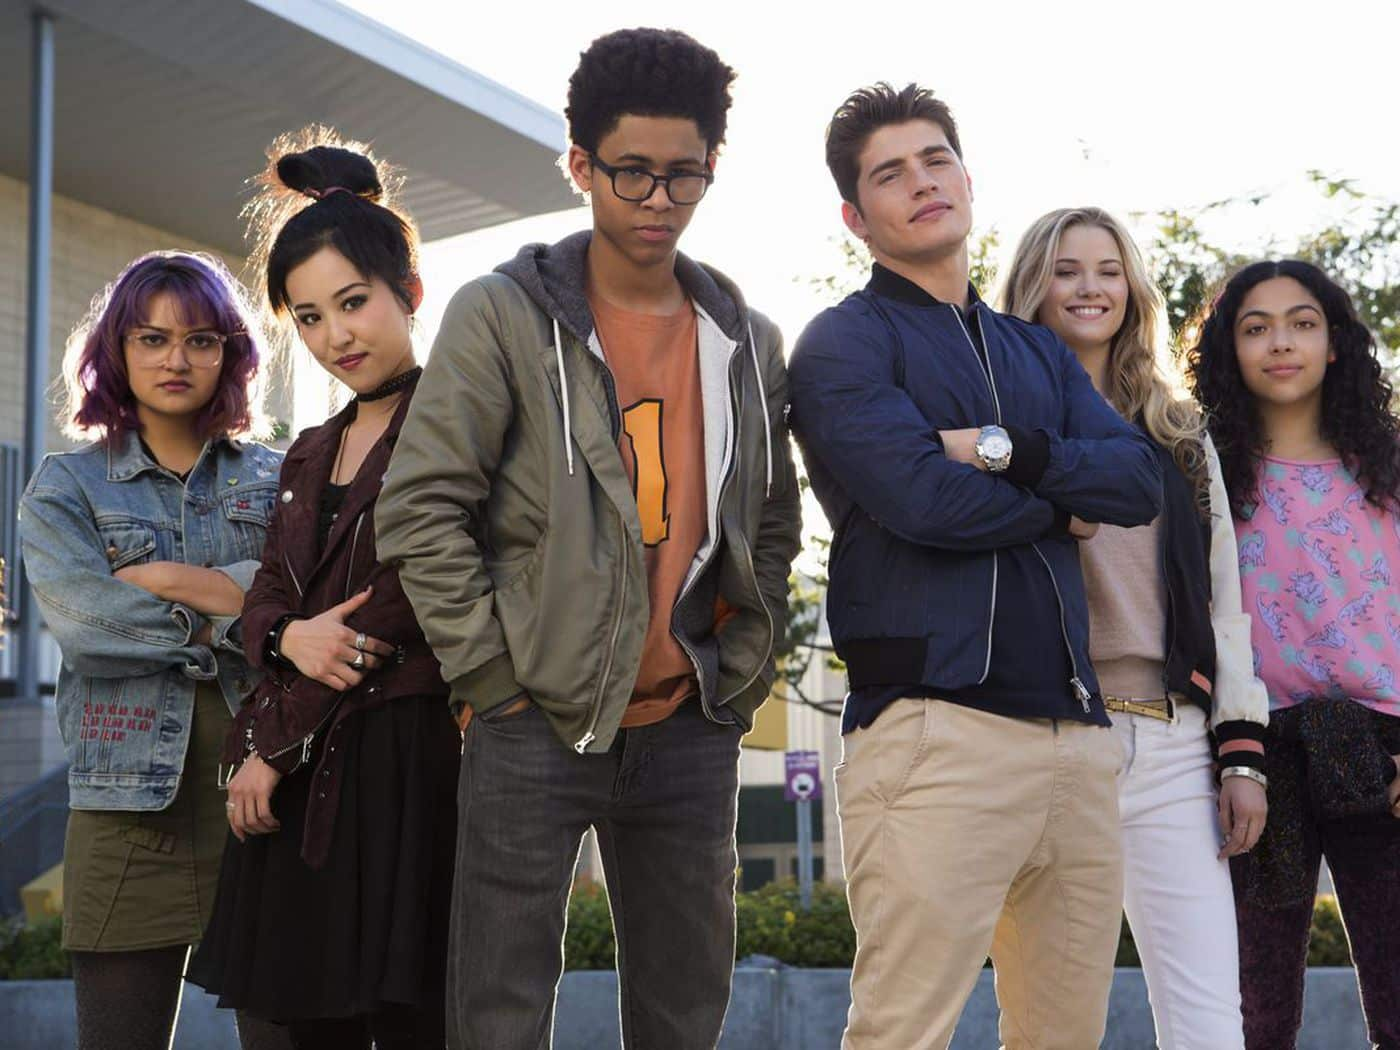 Marvel Comics Runaways publication history excellent storytelling followed by crushing disappointment in cancellation, bad ideas Hulu